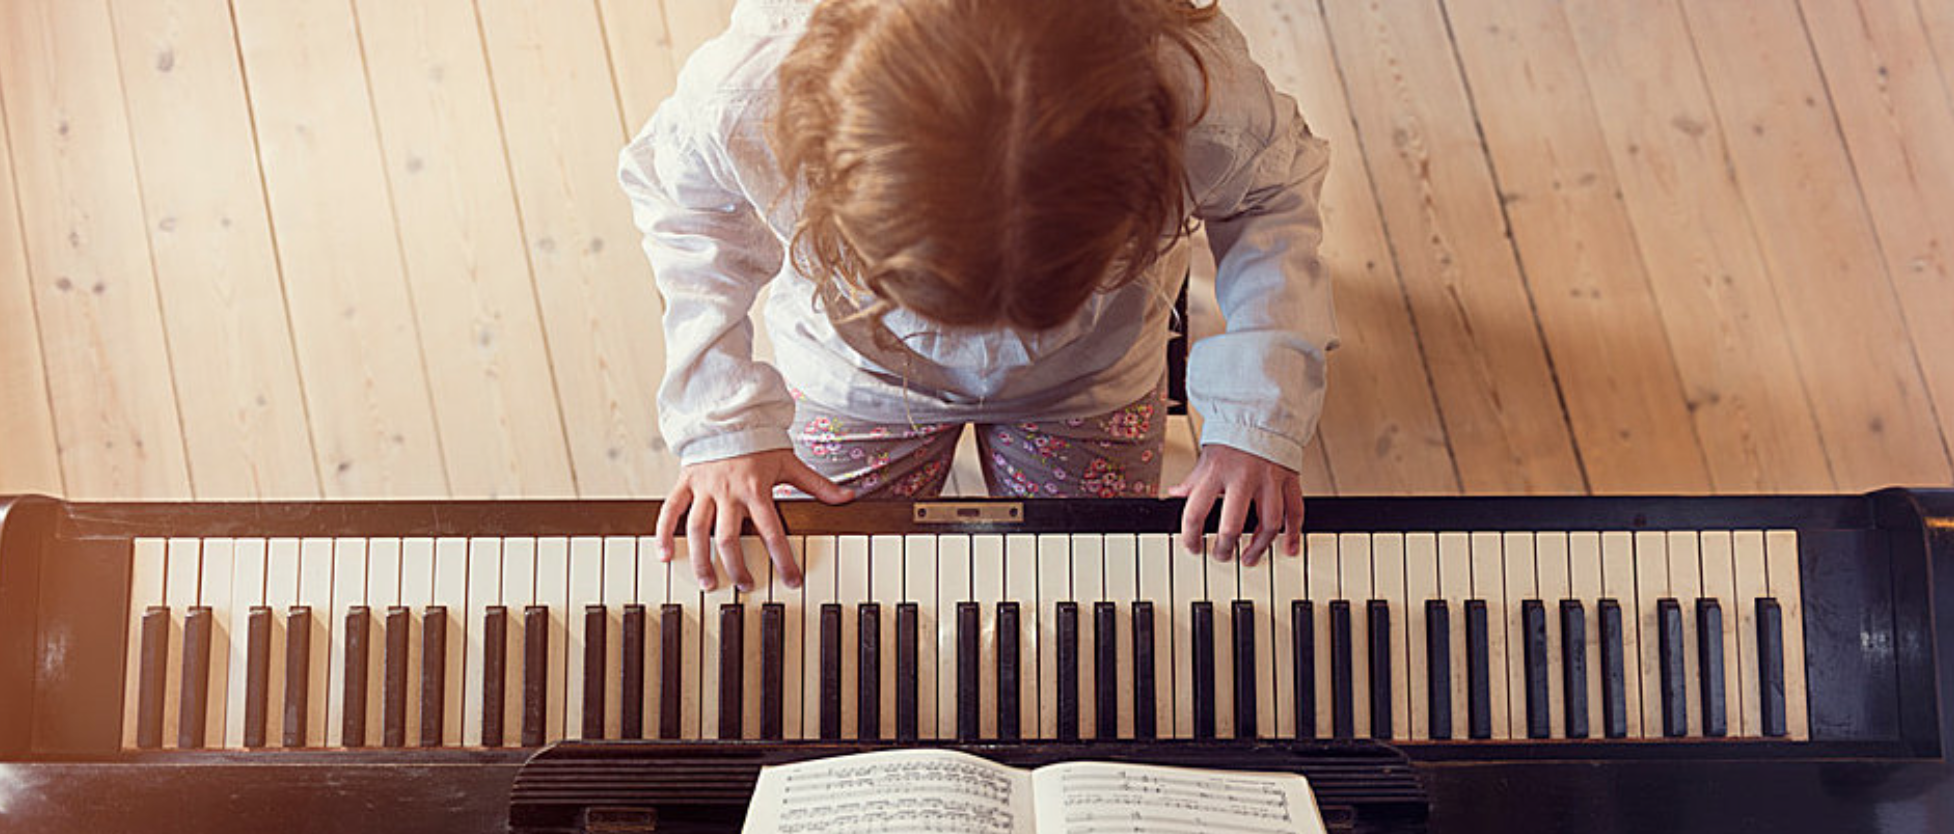 feely-piano-session-child